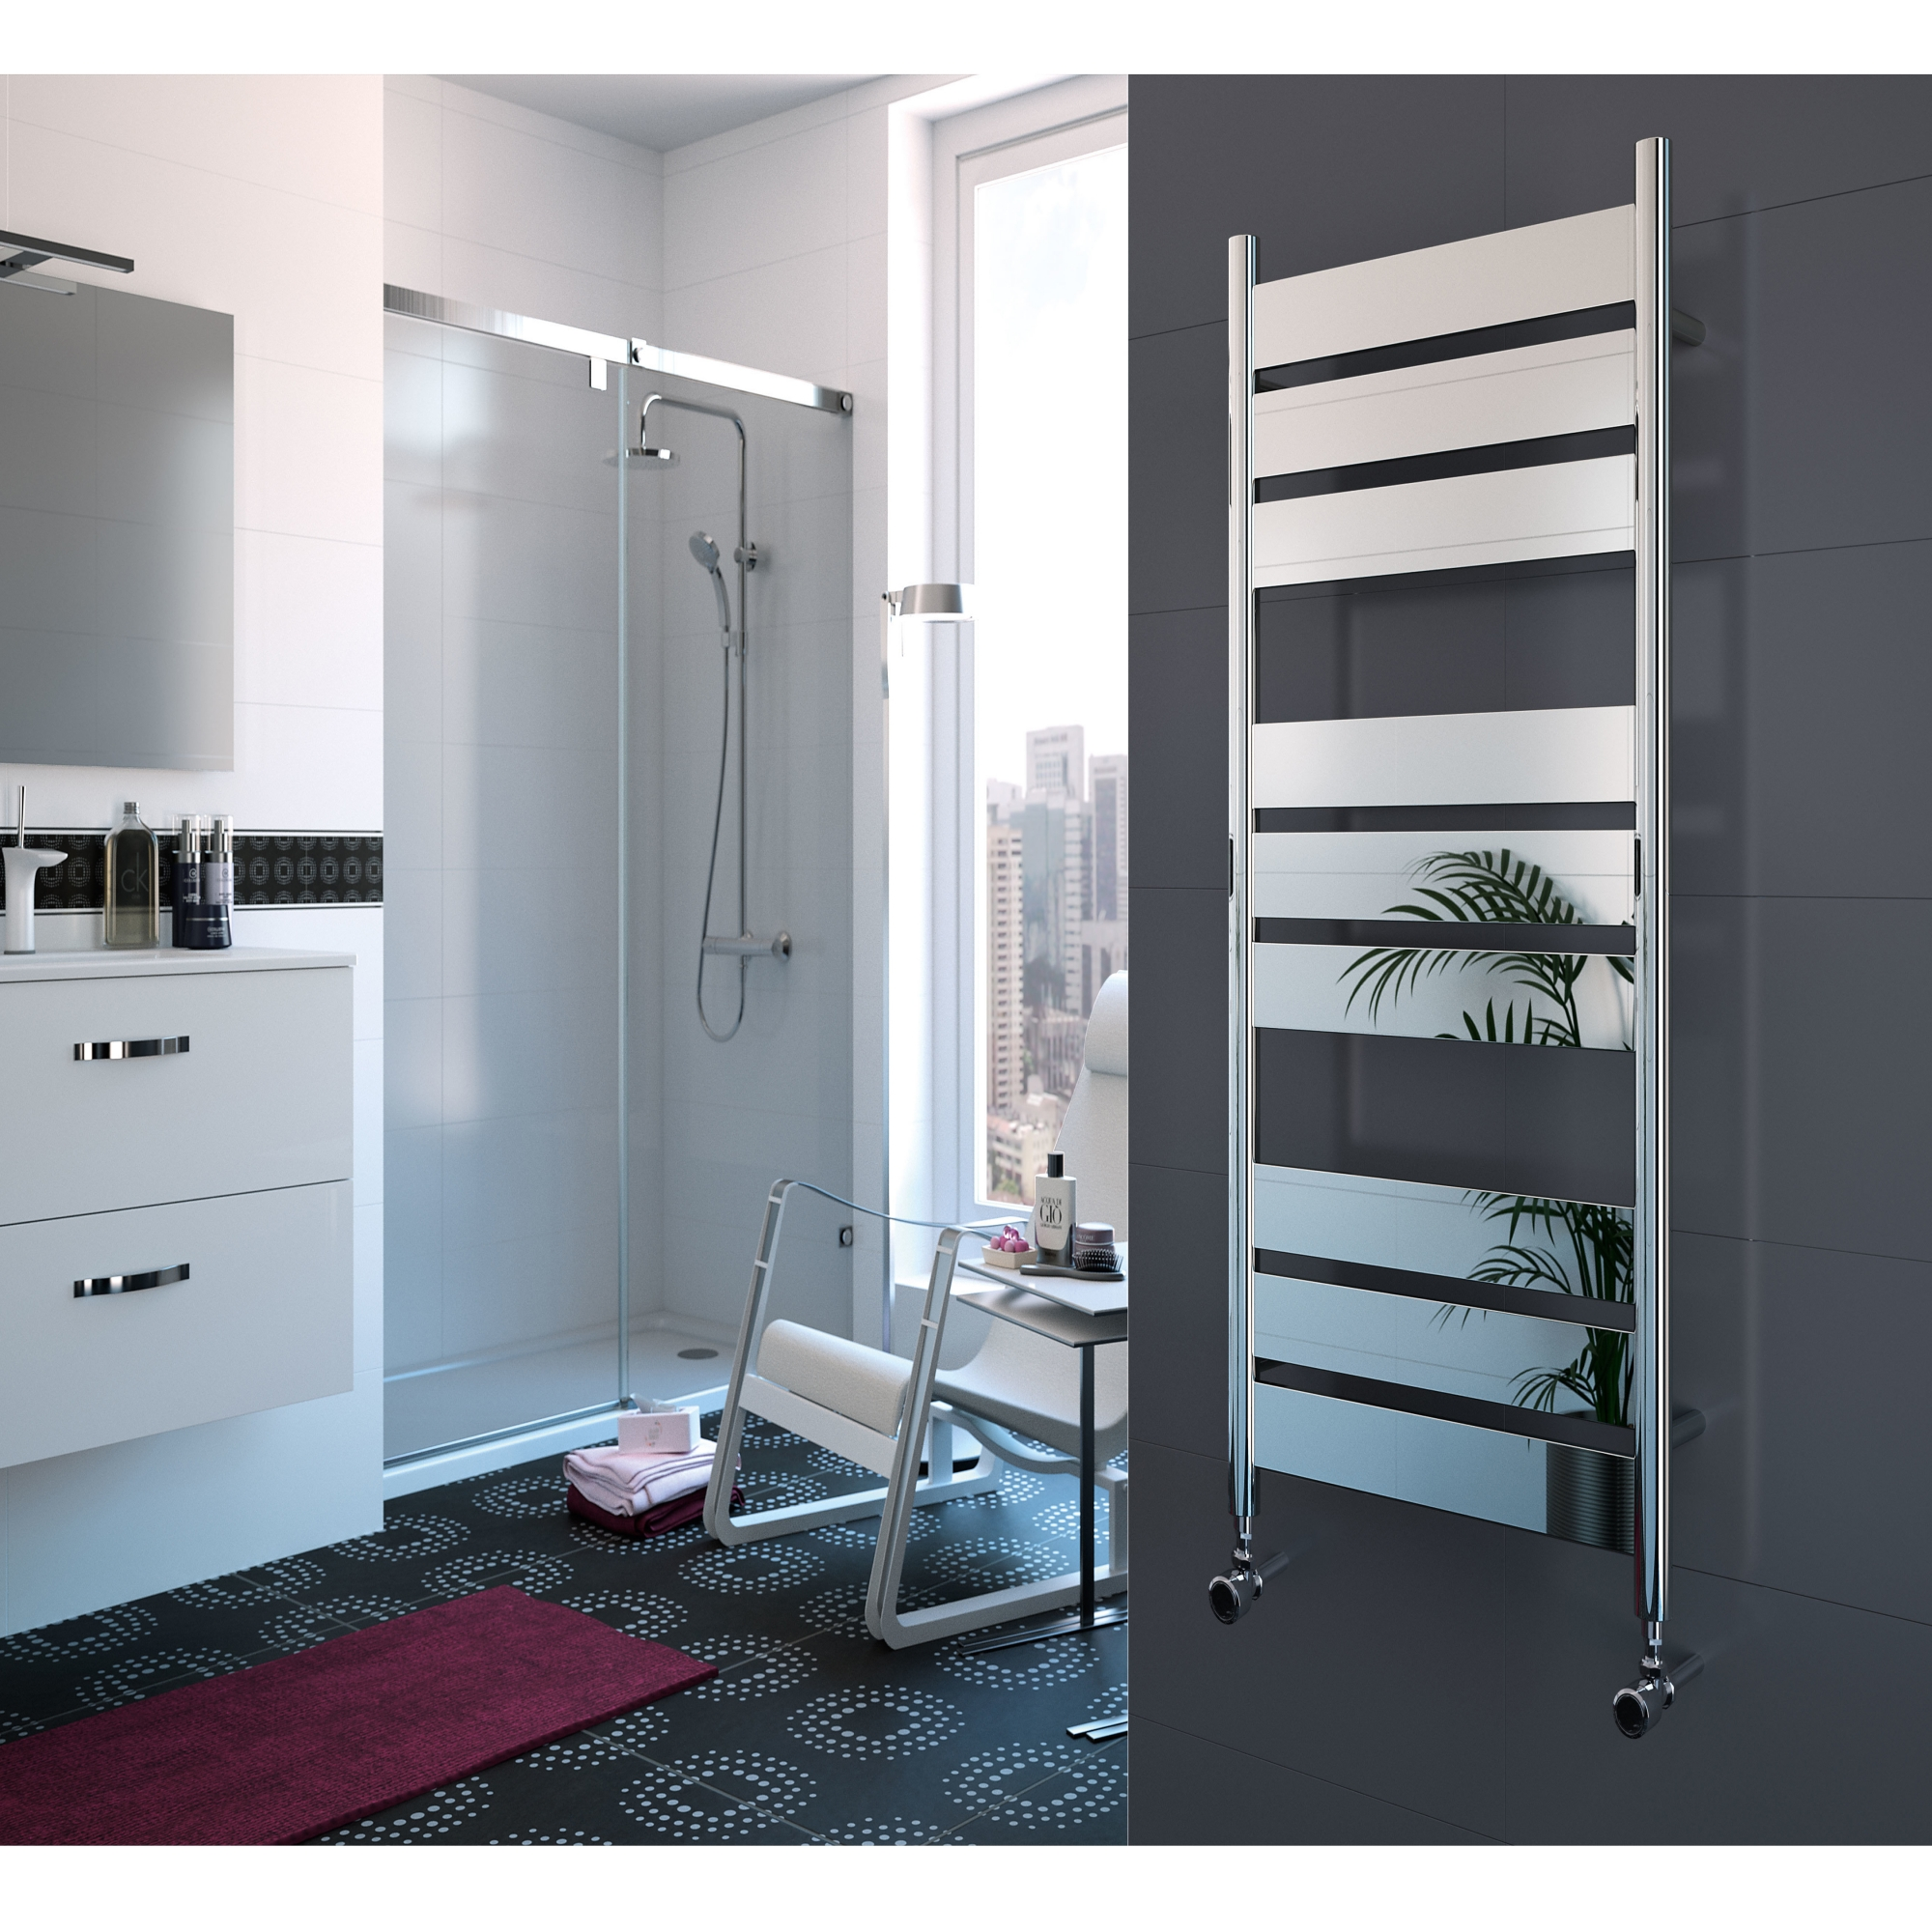 Radox Apollo Designer Heated Towel Rail 1400mm H x 500mm W Anthracite